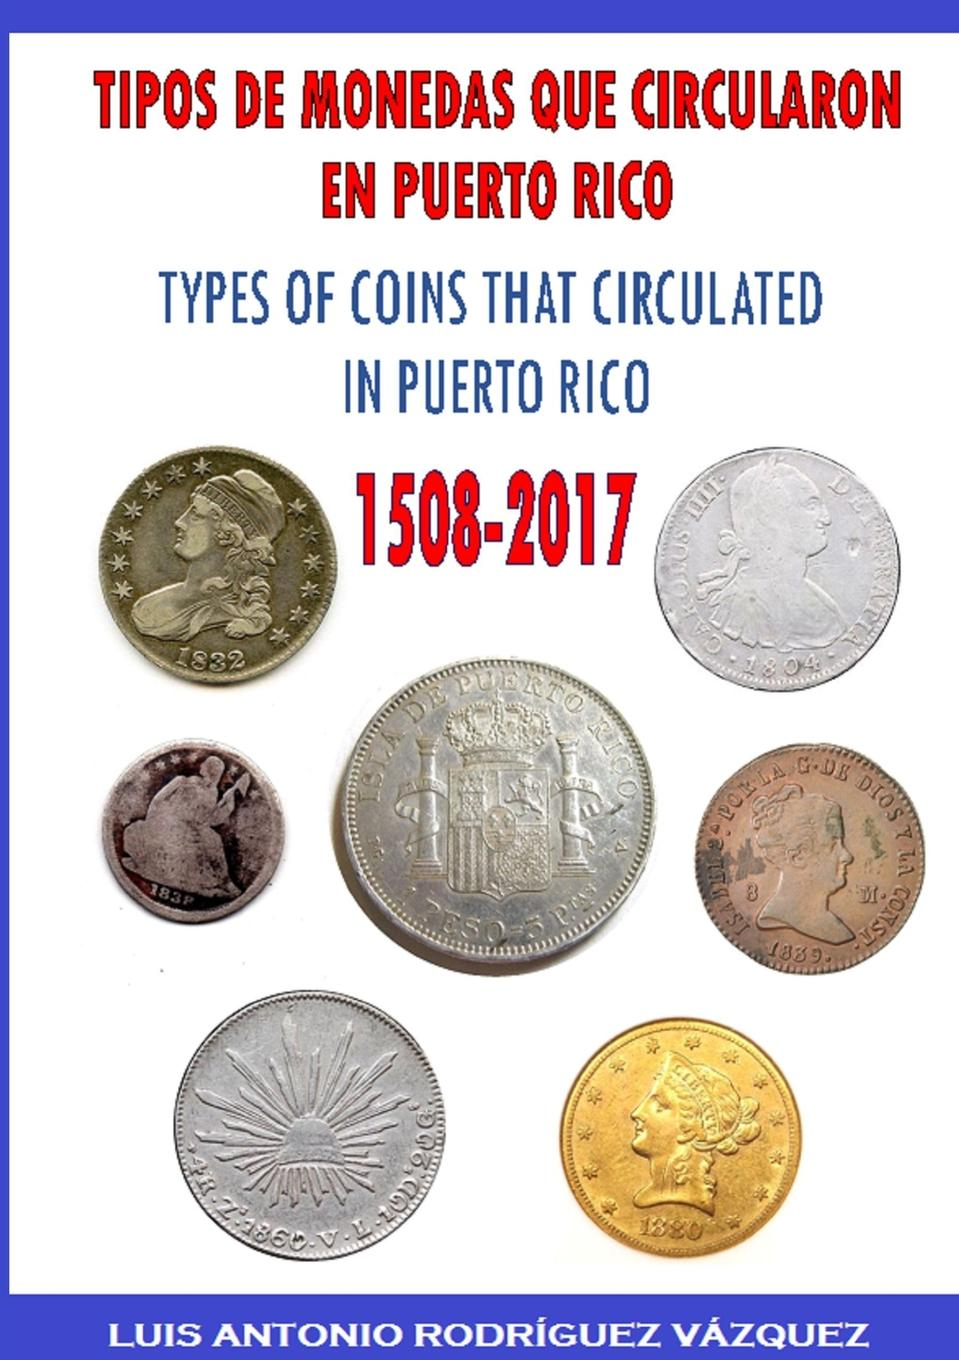 LUIS ANTONIO RODRÍGUEZ VÁZQUEZ TYPES OF COINS THAT CIRCULATE IN PUERTO RICO (1508-2017) cuhaj g michael th mccue d sanders k unusual world coins companion volume to standart catalog of world coins